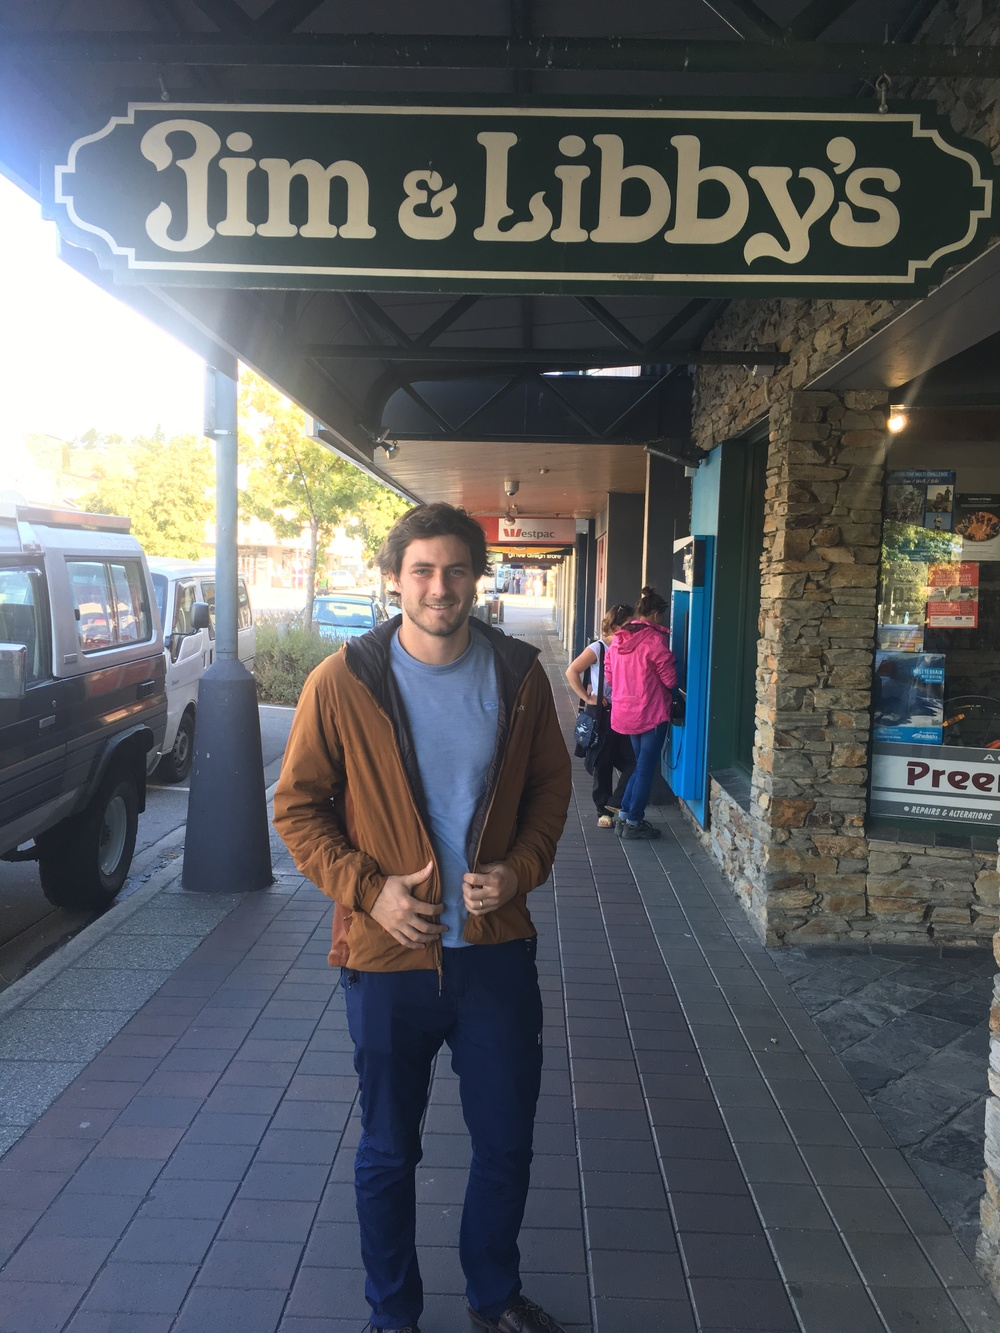 Jim + Libby - we found your store in Wanaka!